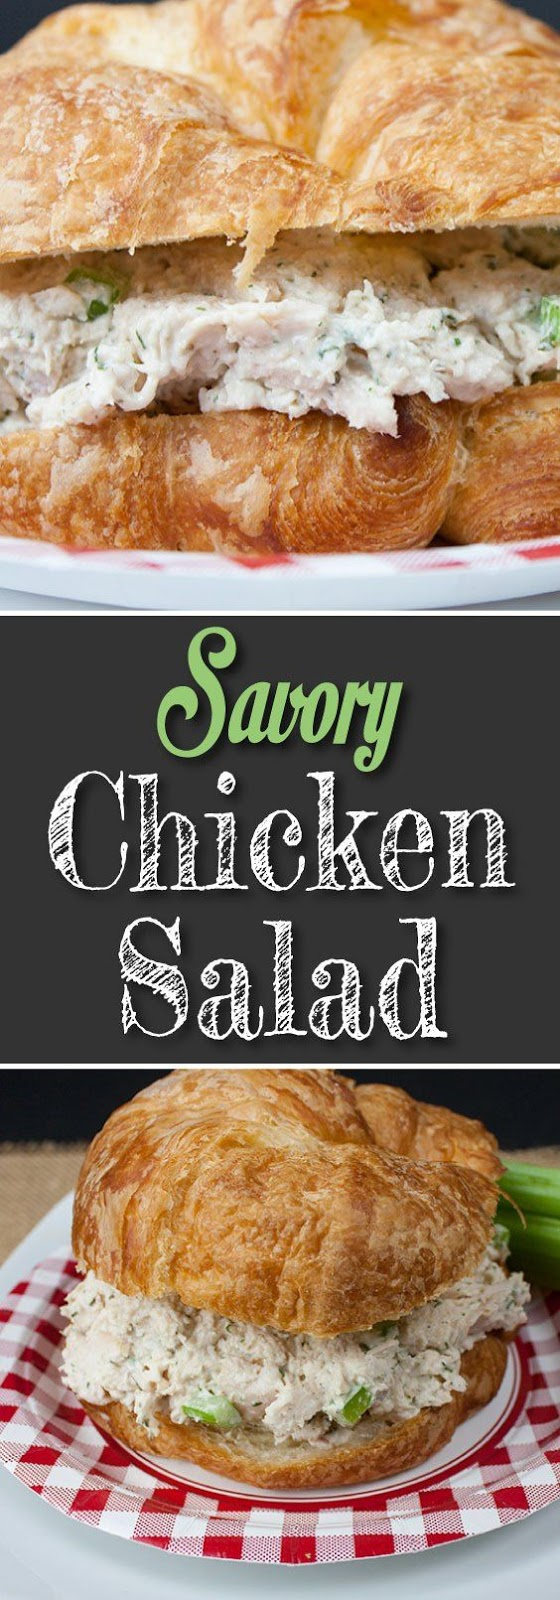 ★★★★☆ 1671 ratings      | Savory Chicken Salad Quick and Easy #Savory #Chicken #Salad #Quick #Easy